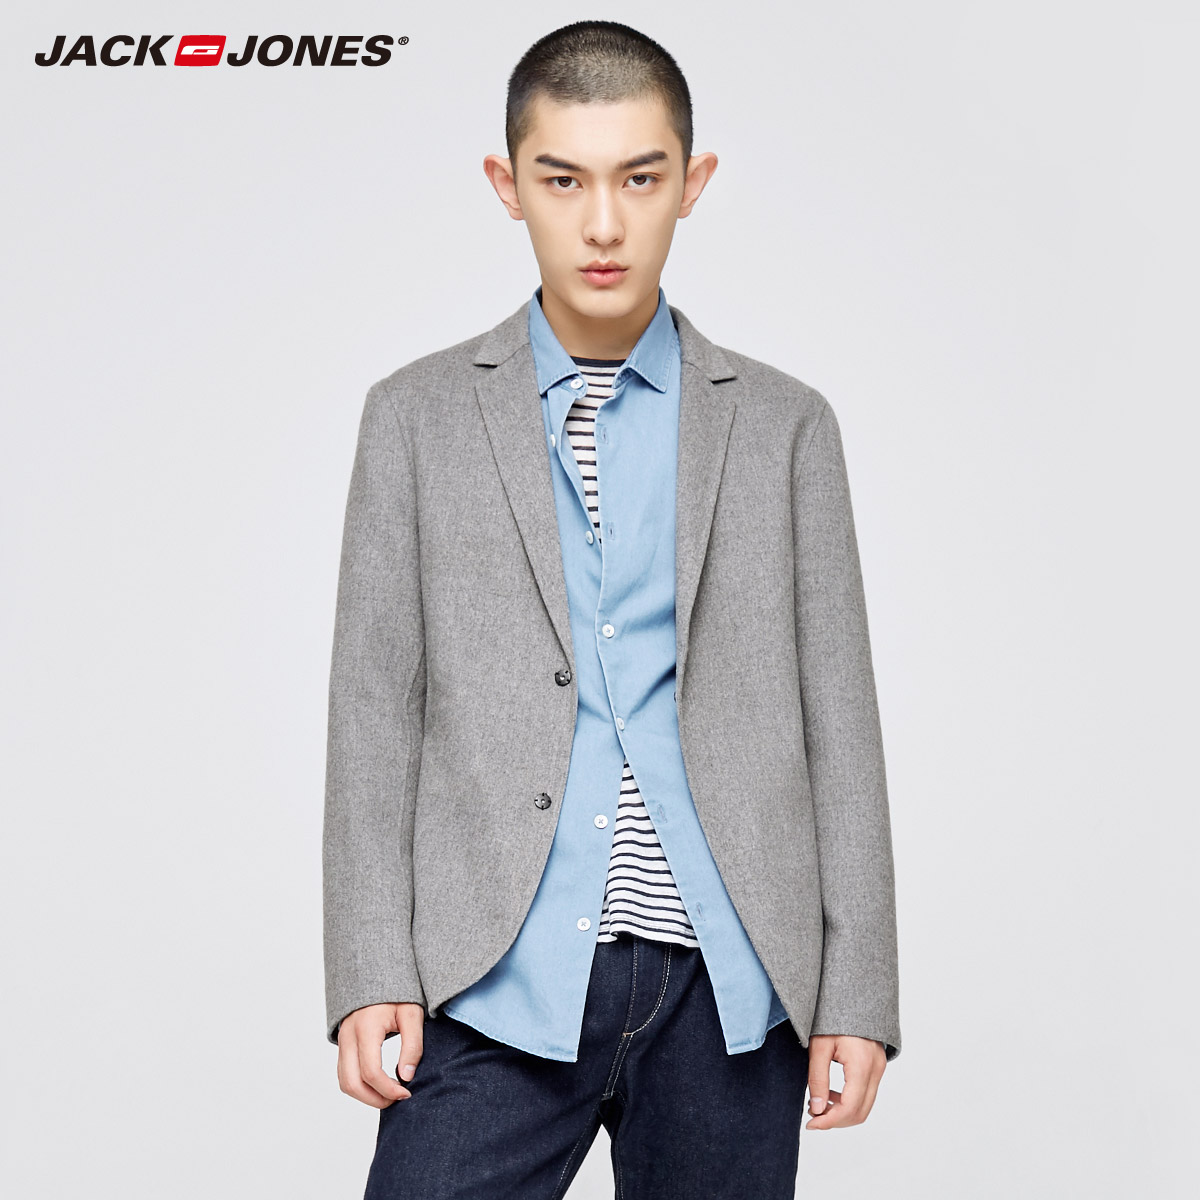 JackJones Wool-blend slim fit business leisure suit jacket casual suit jacket male Blazers men coat Terno Masculino 217408502